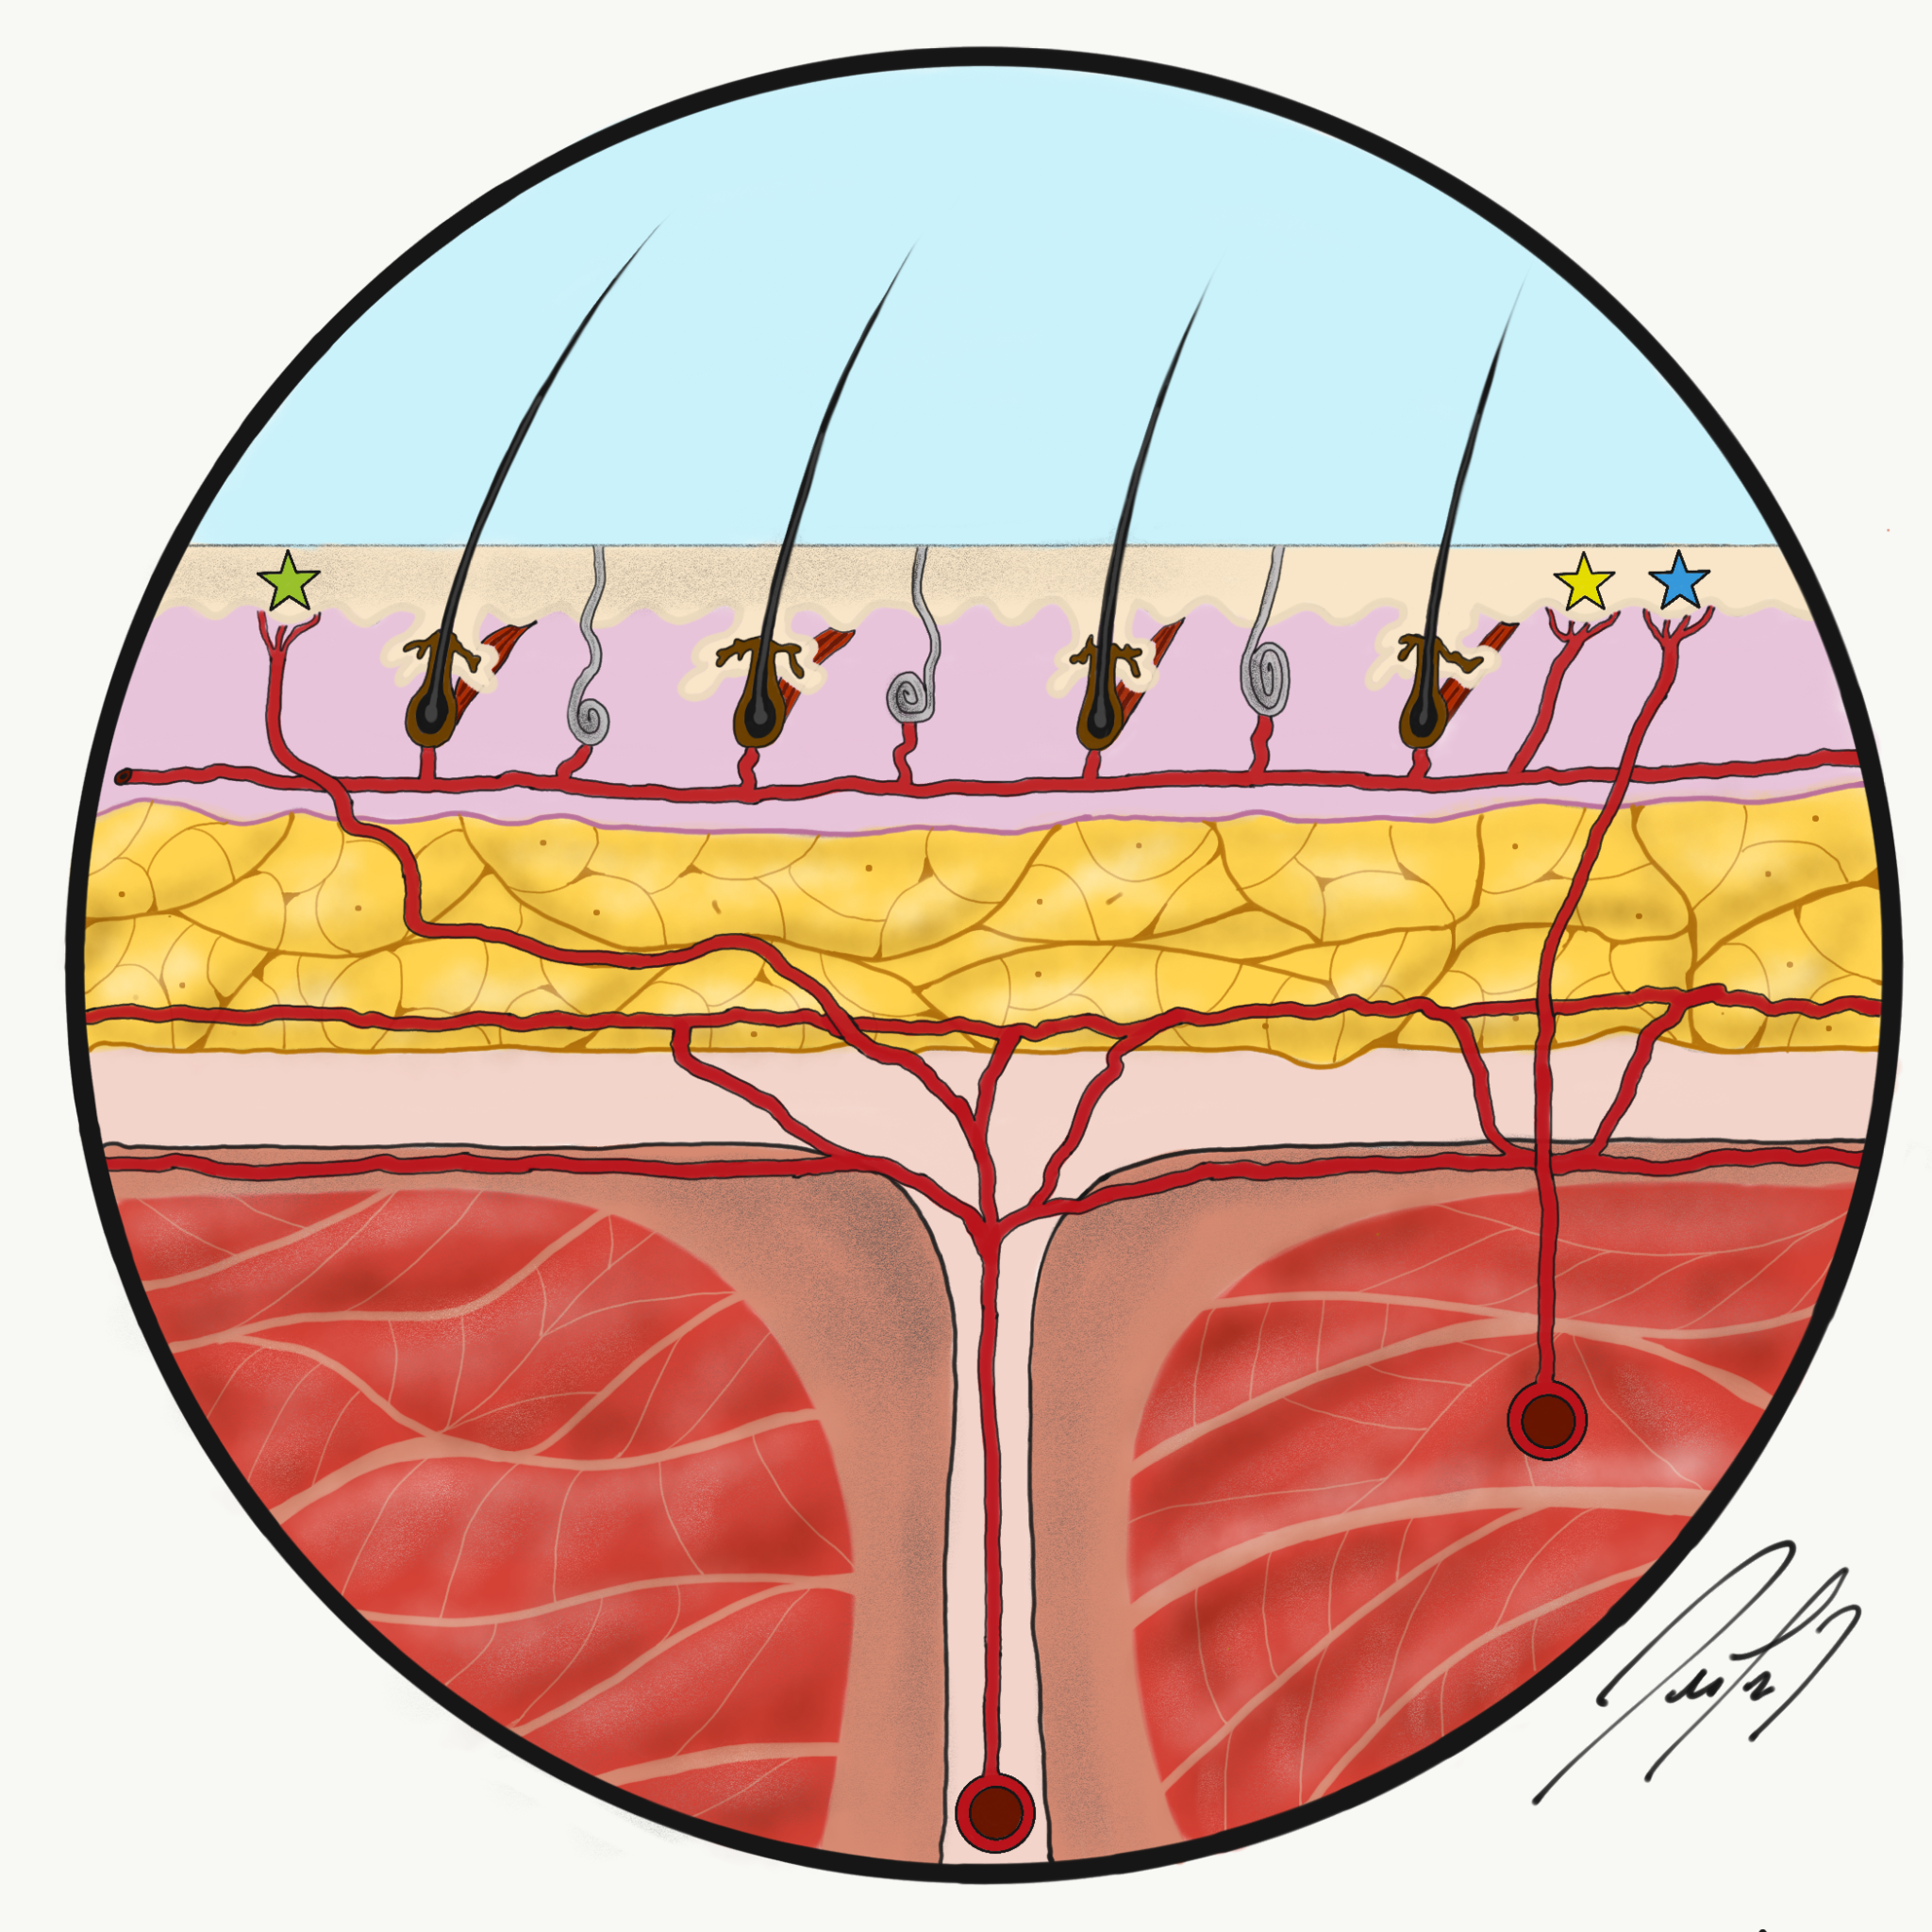 Figure 1: Green star stands for a septocutaneous perforator. Yellow star for a direct cutaneous perforator. Blue star for a musculocutaneous perforator.